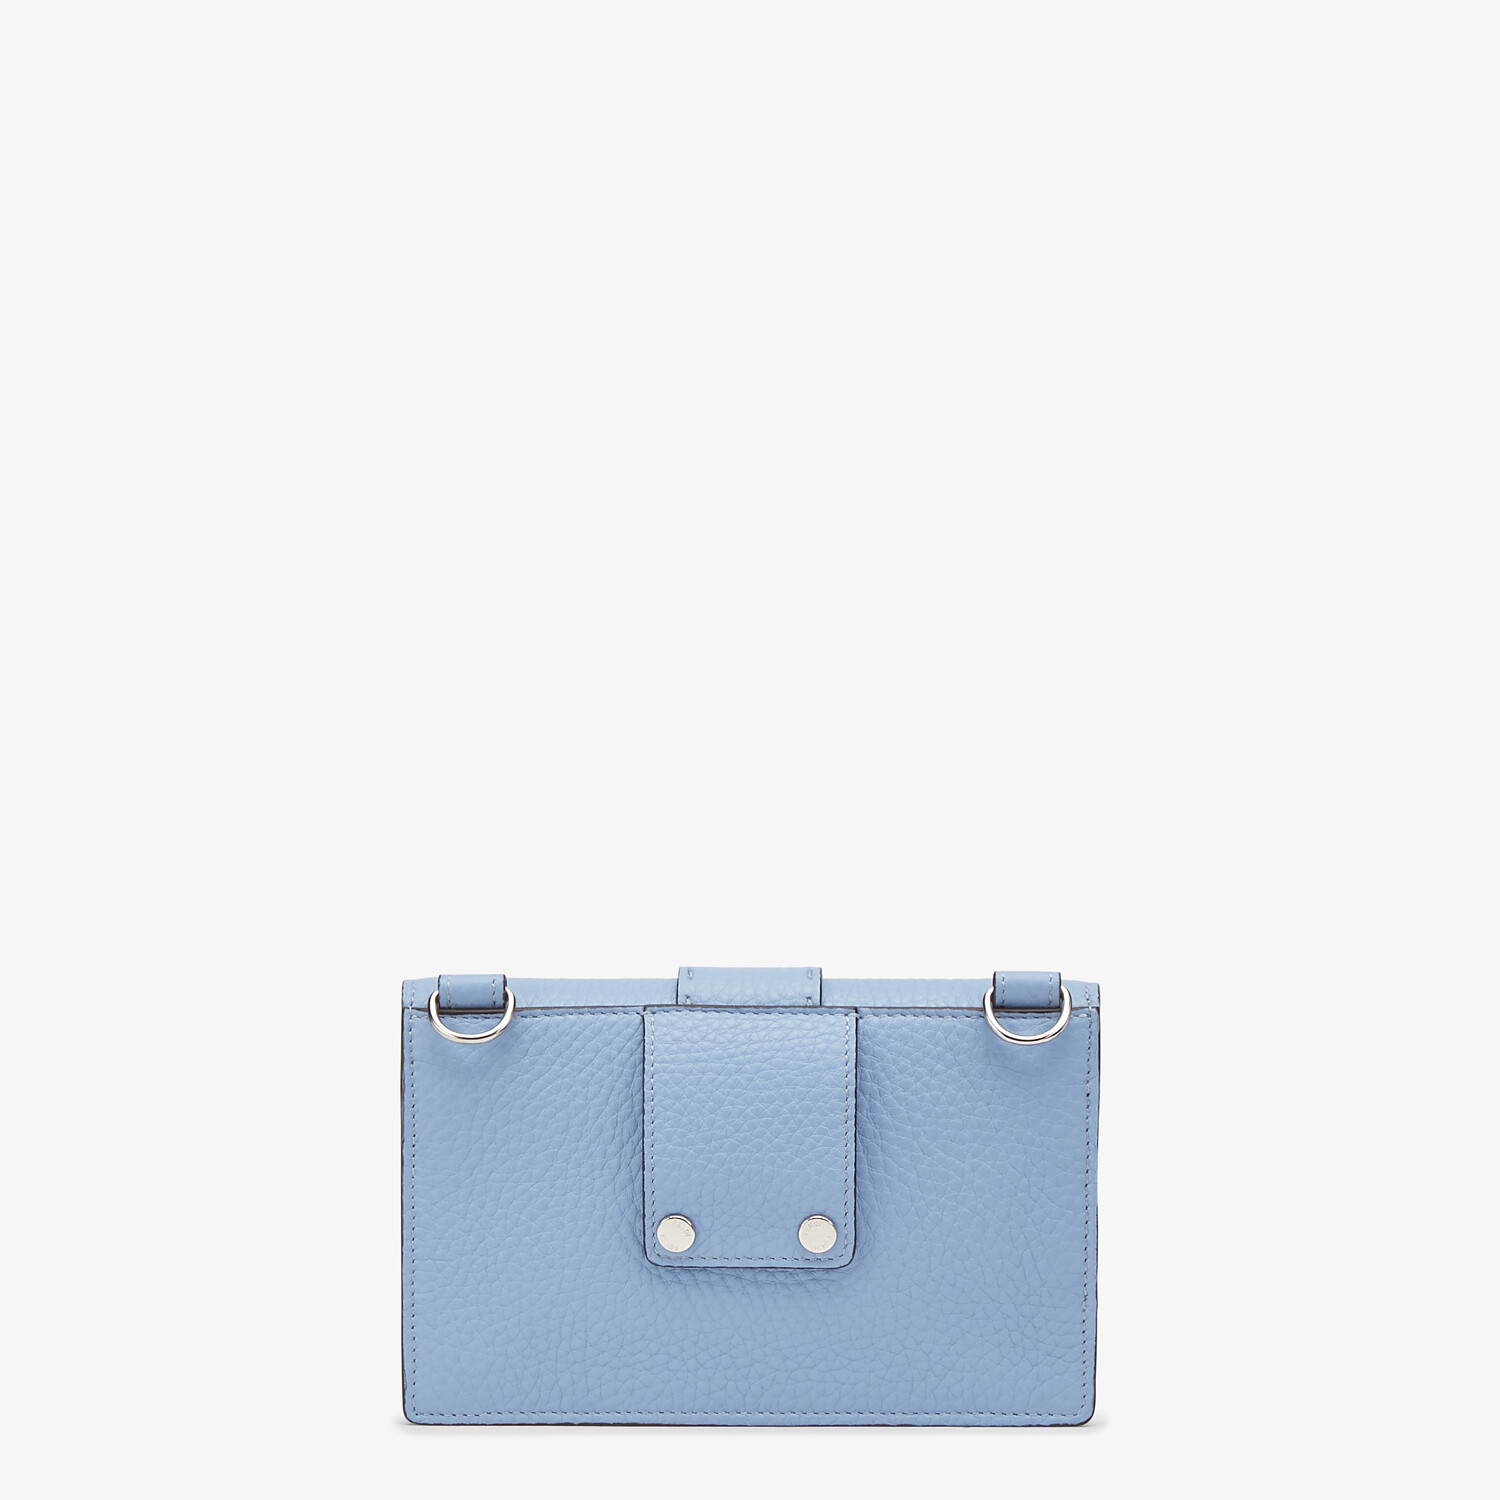 FENDI BAGUETTE POUCH - Light blue leather bag - view 3 detail